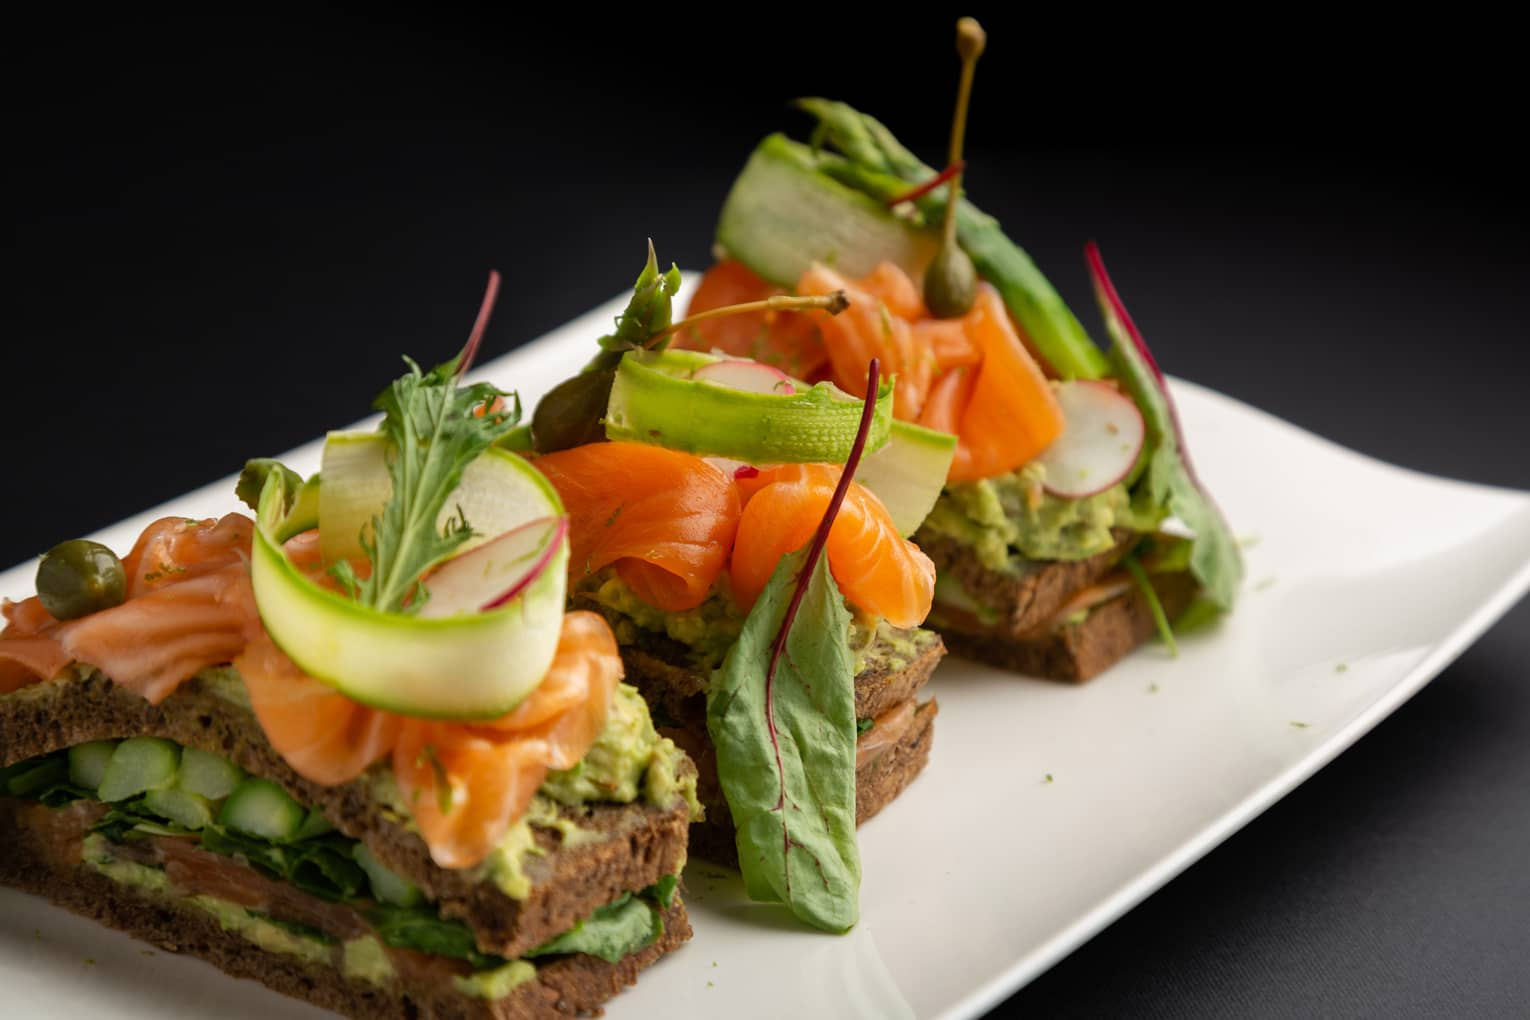 Scottish smoked salmon club sandwich with avocado, sucrine lettuce and radish